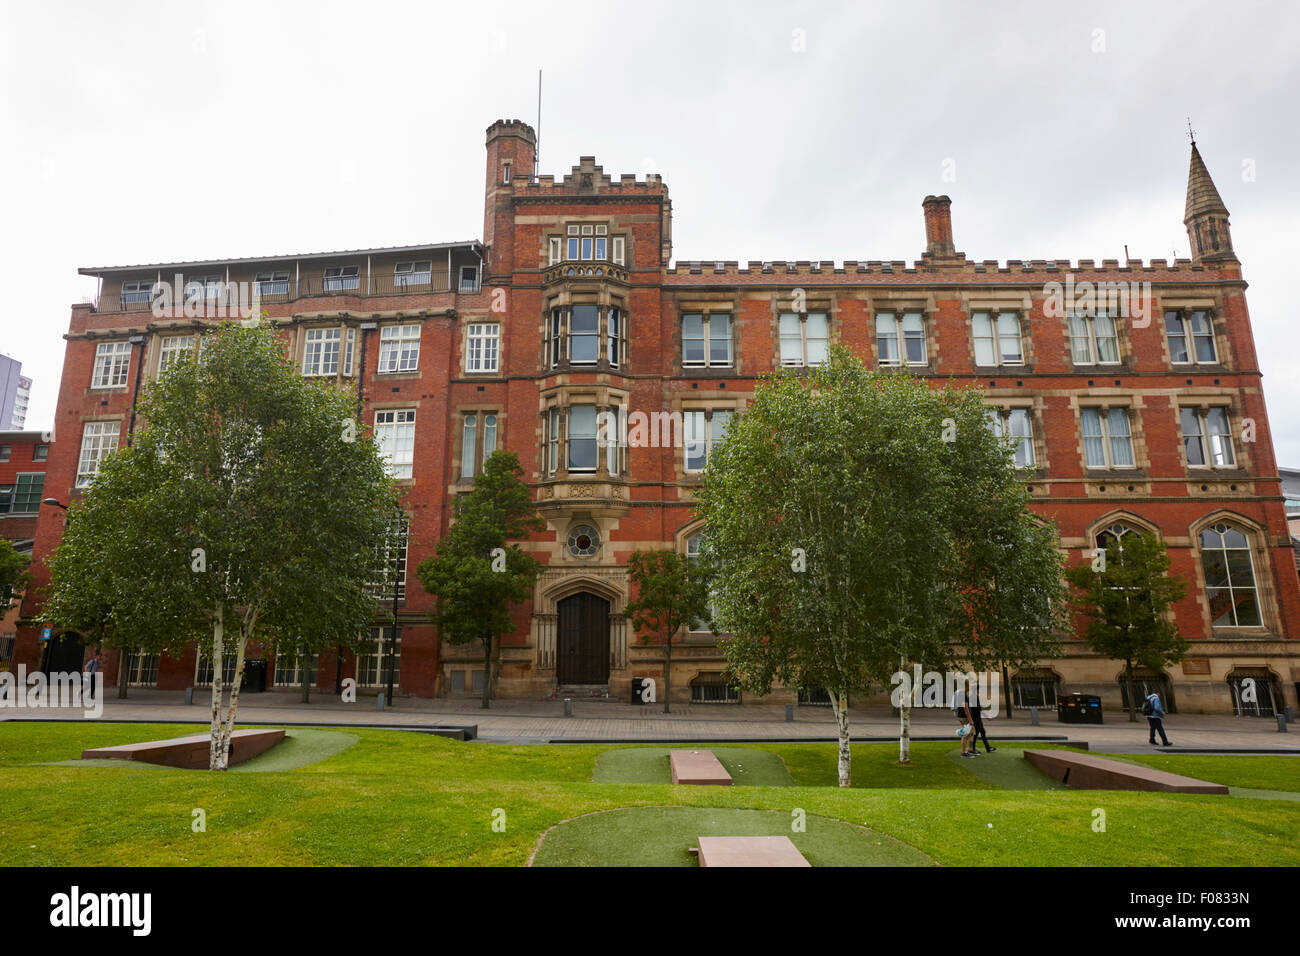 Manchester grammar school building England UK - Stock Image